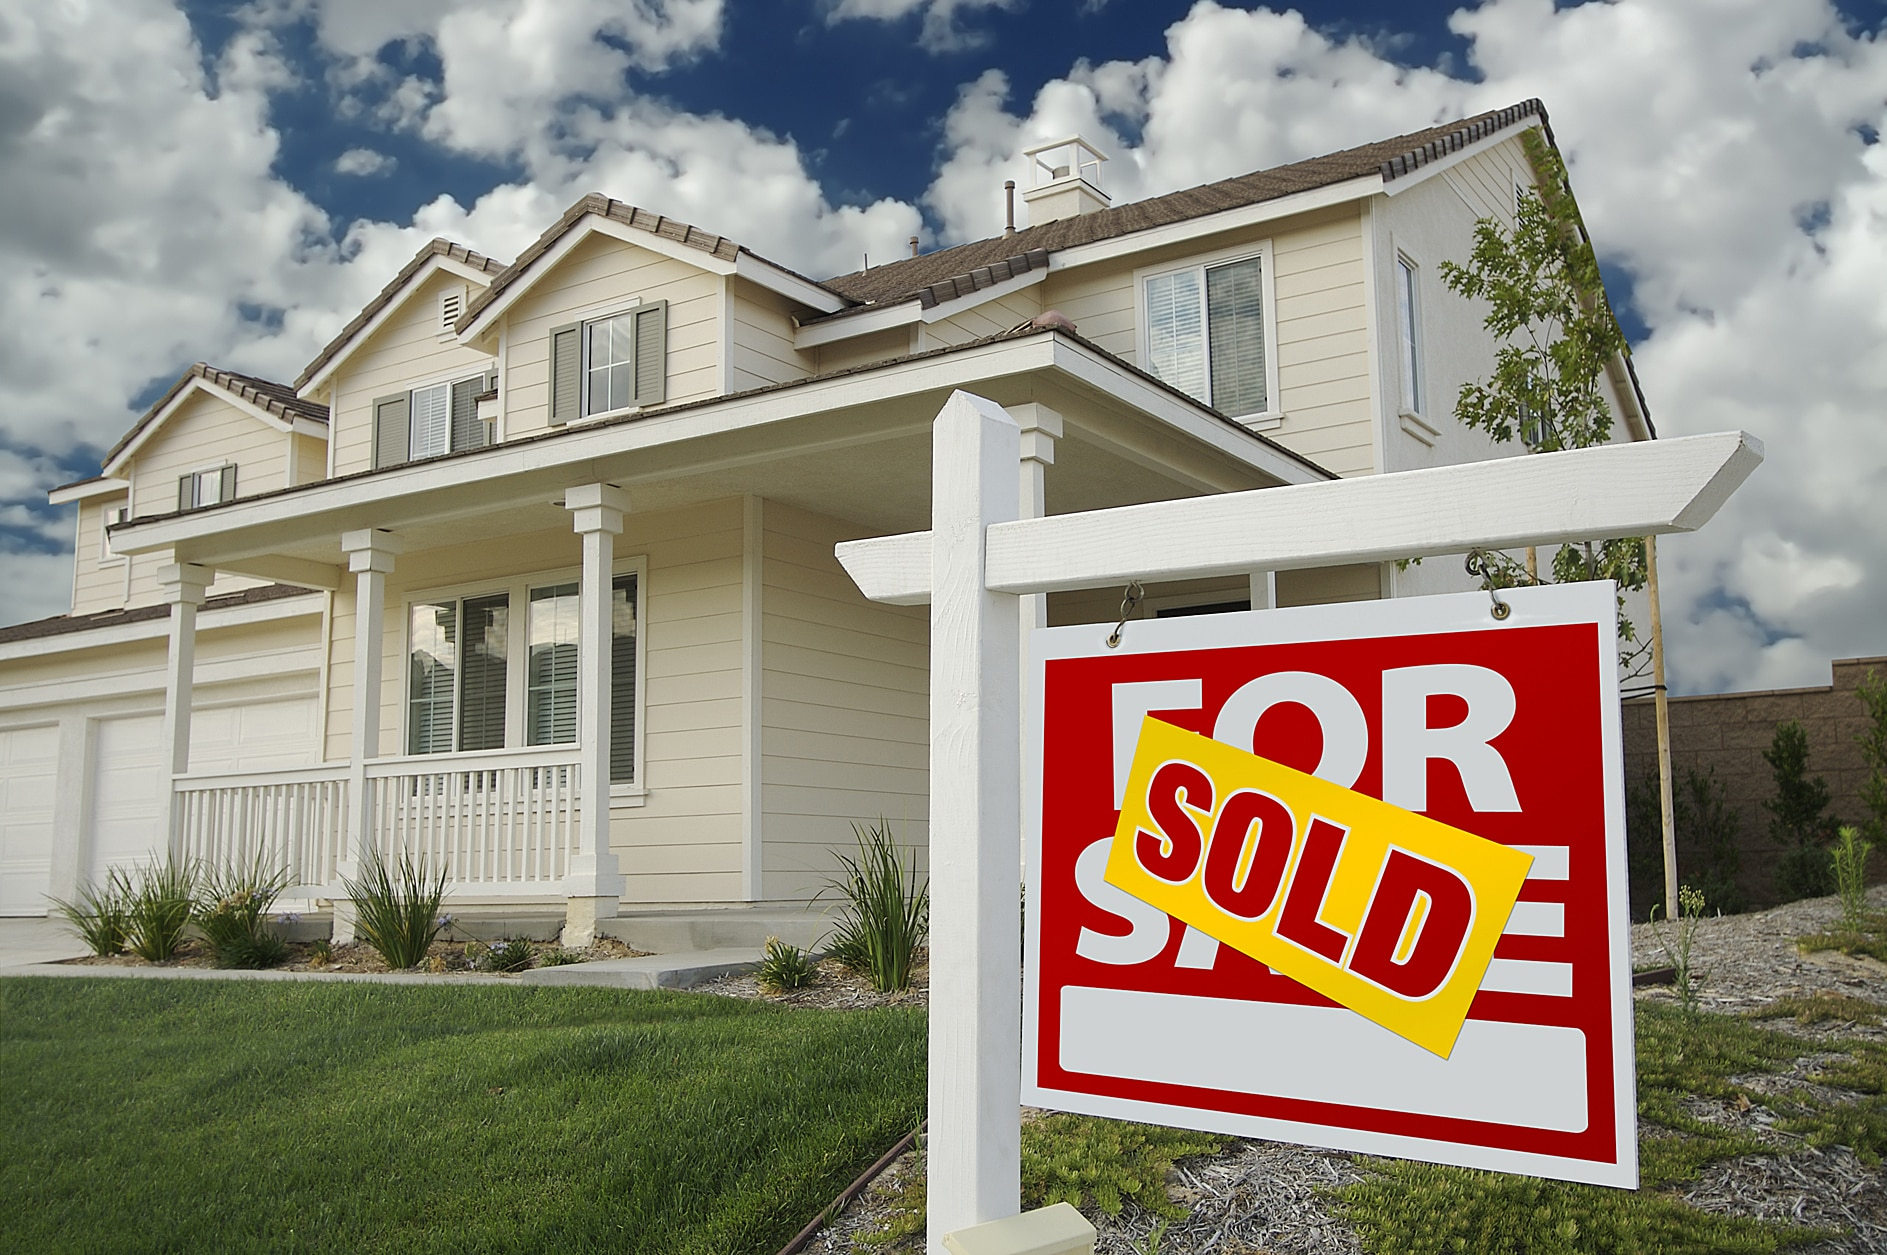 How to Bid a House to Get a Satisfactory Price